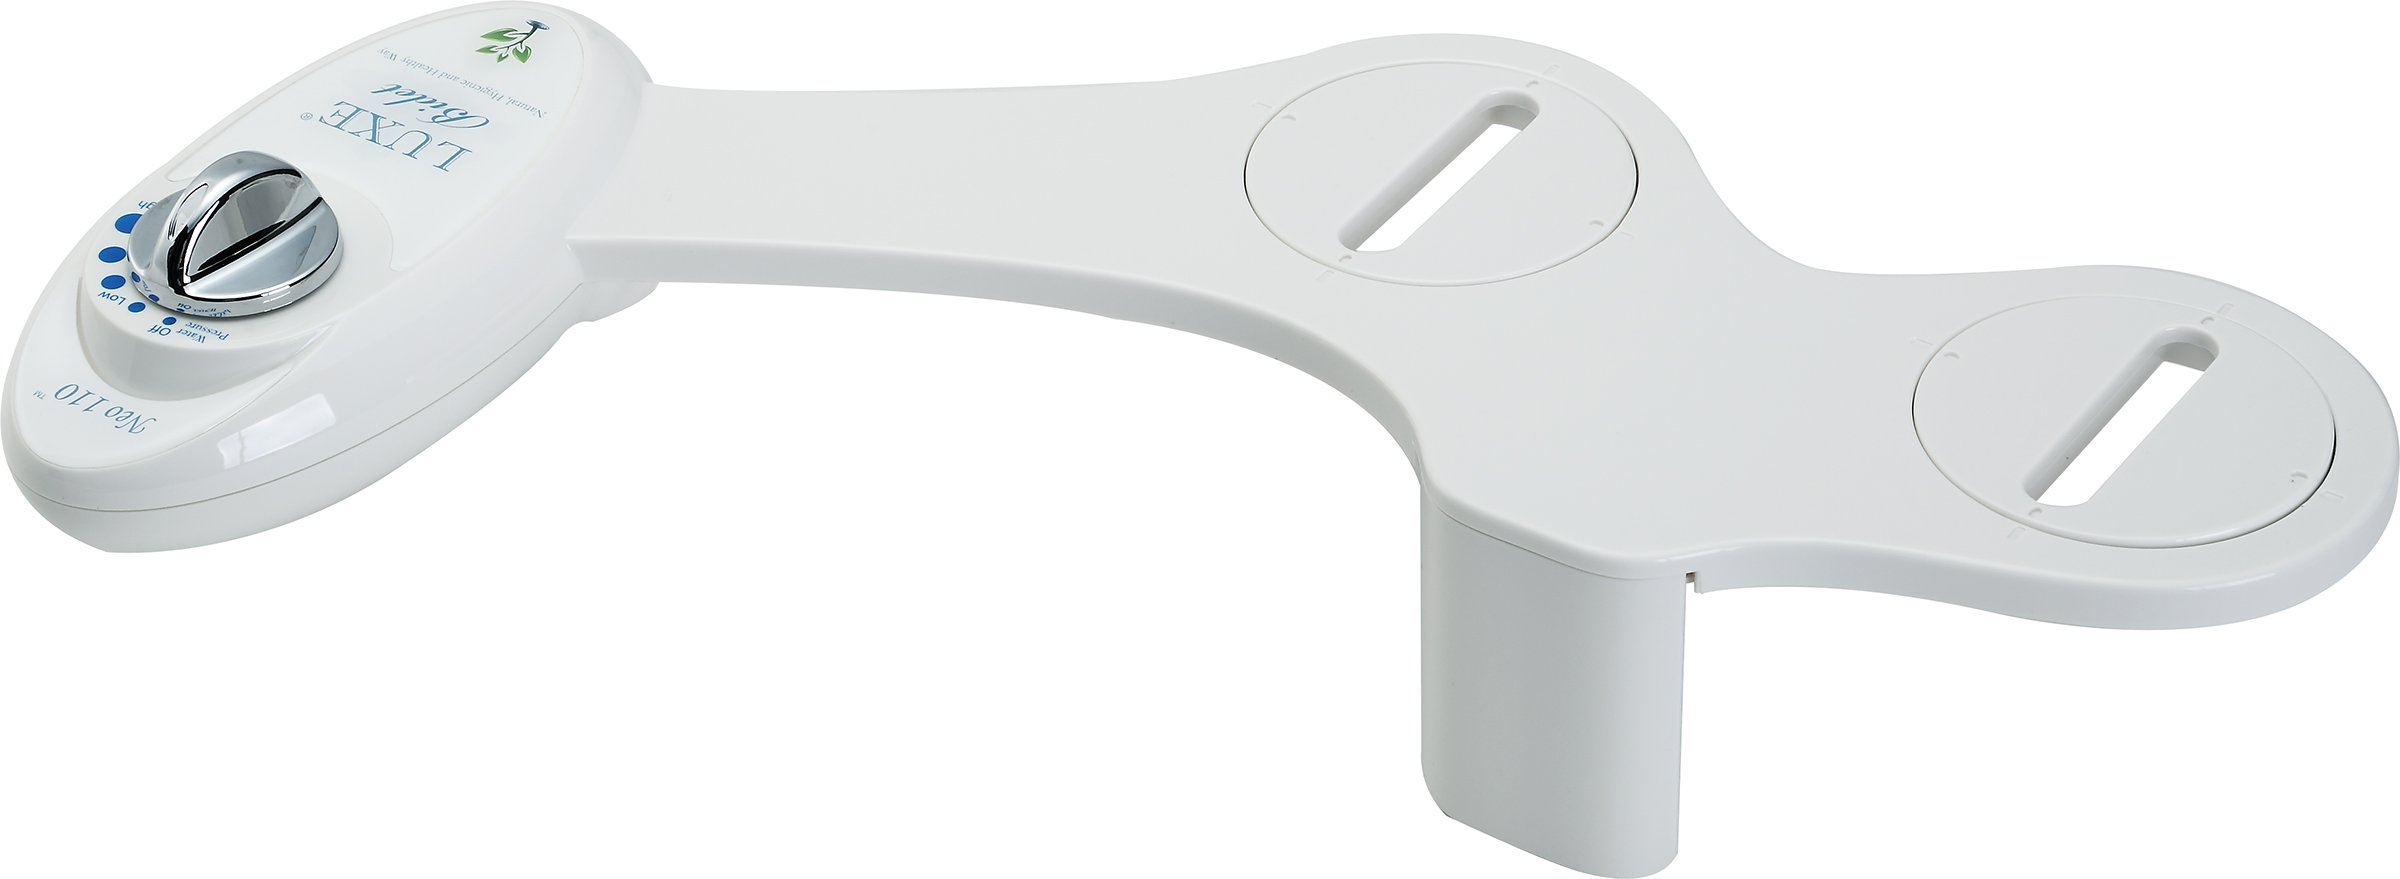 Luxe Bidet Neo 110 - Fresh Water Non-Electric Mechanical Bidet Toilet Seat Attachment (white and white) by LUXE Bidet (Image #3)